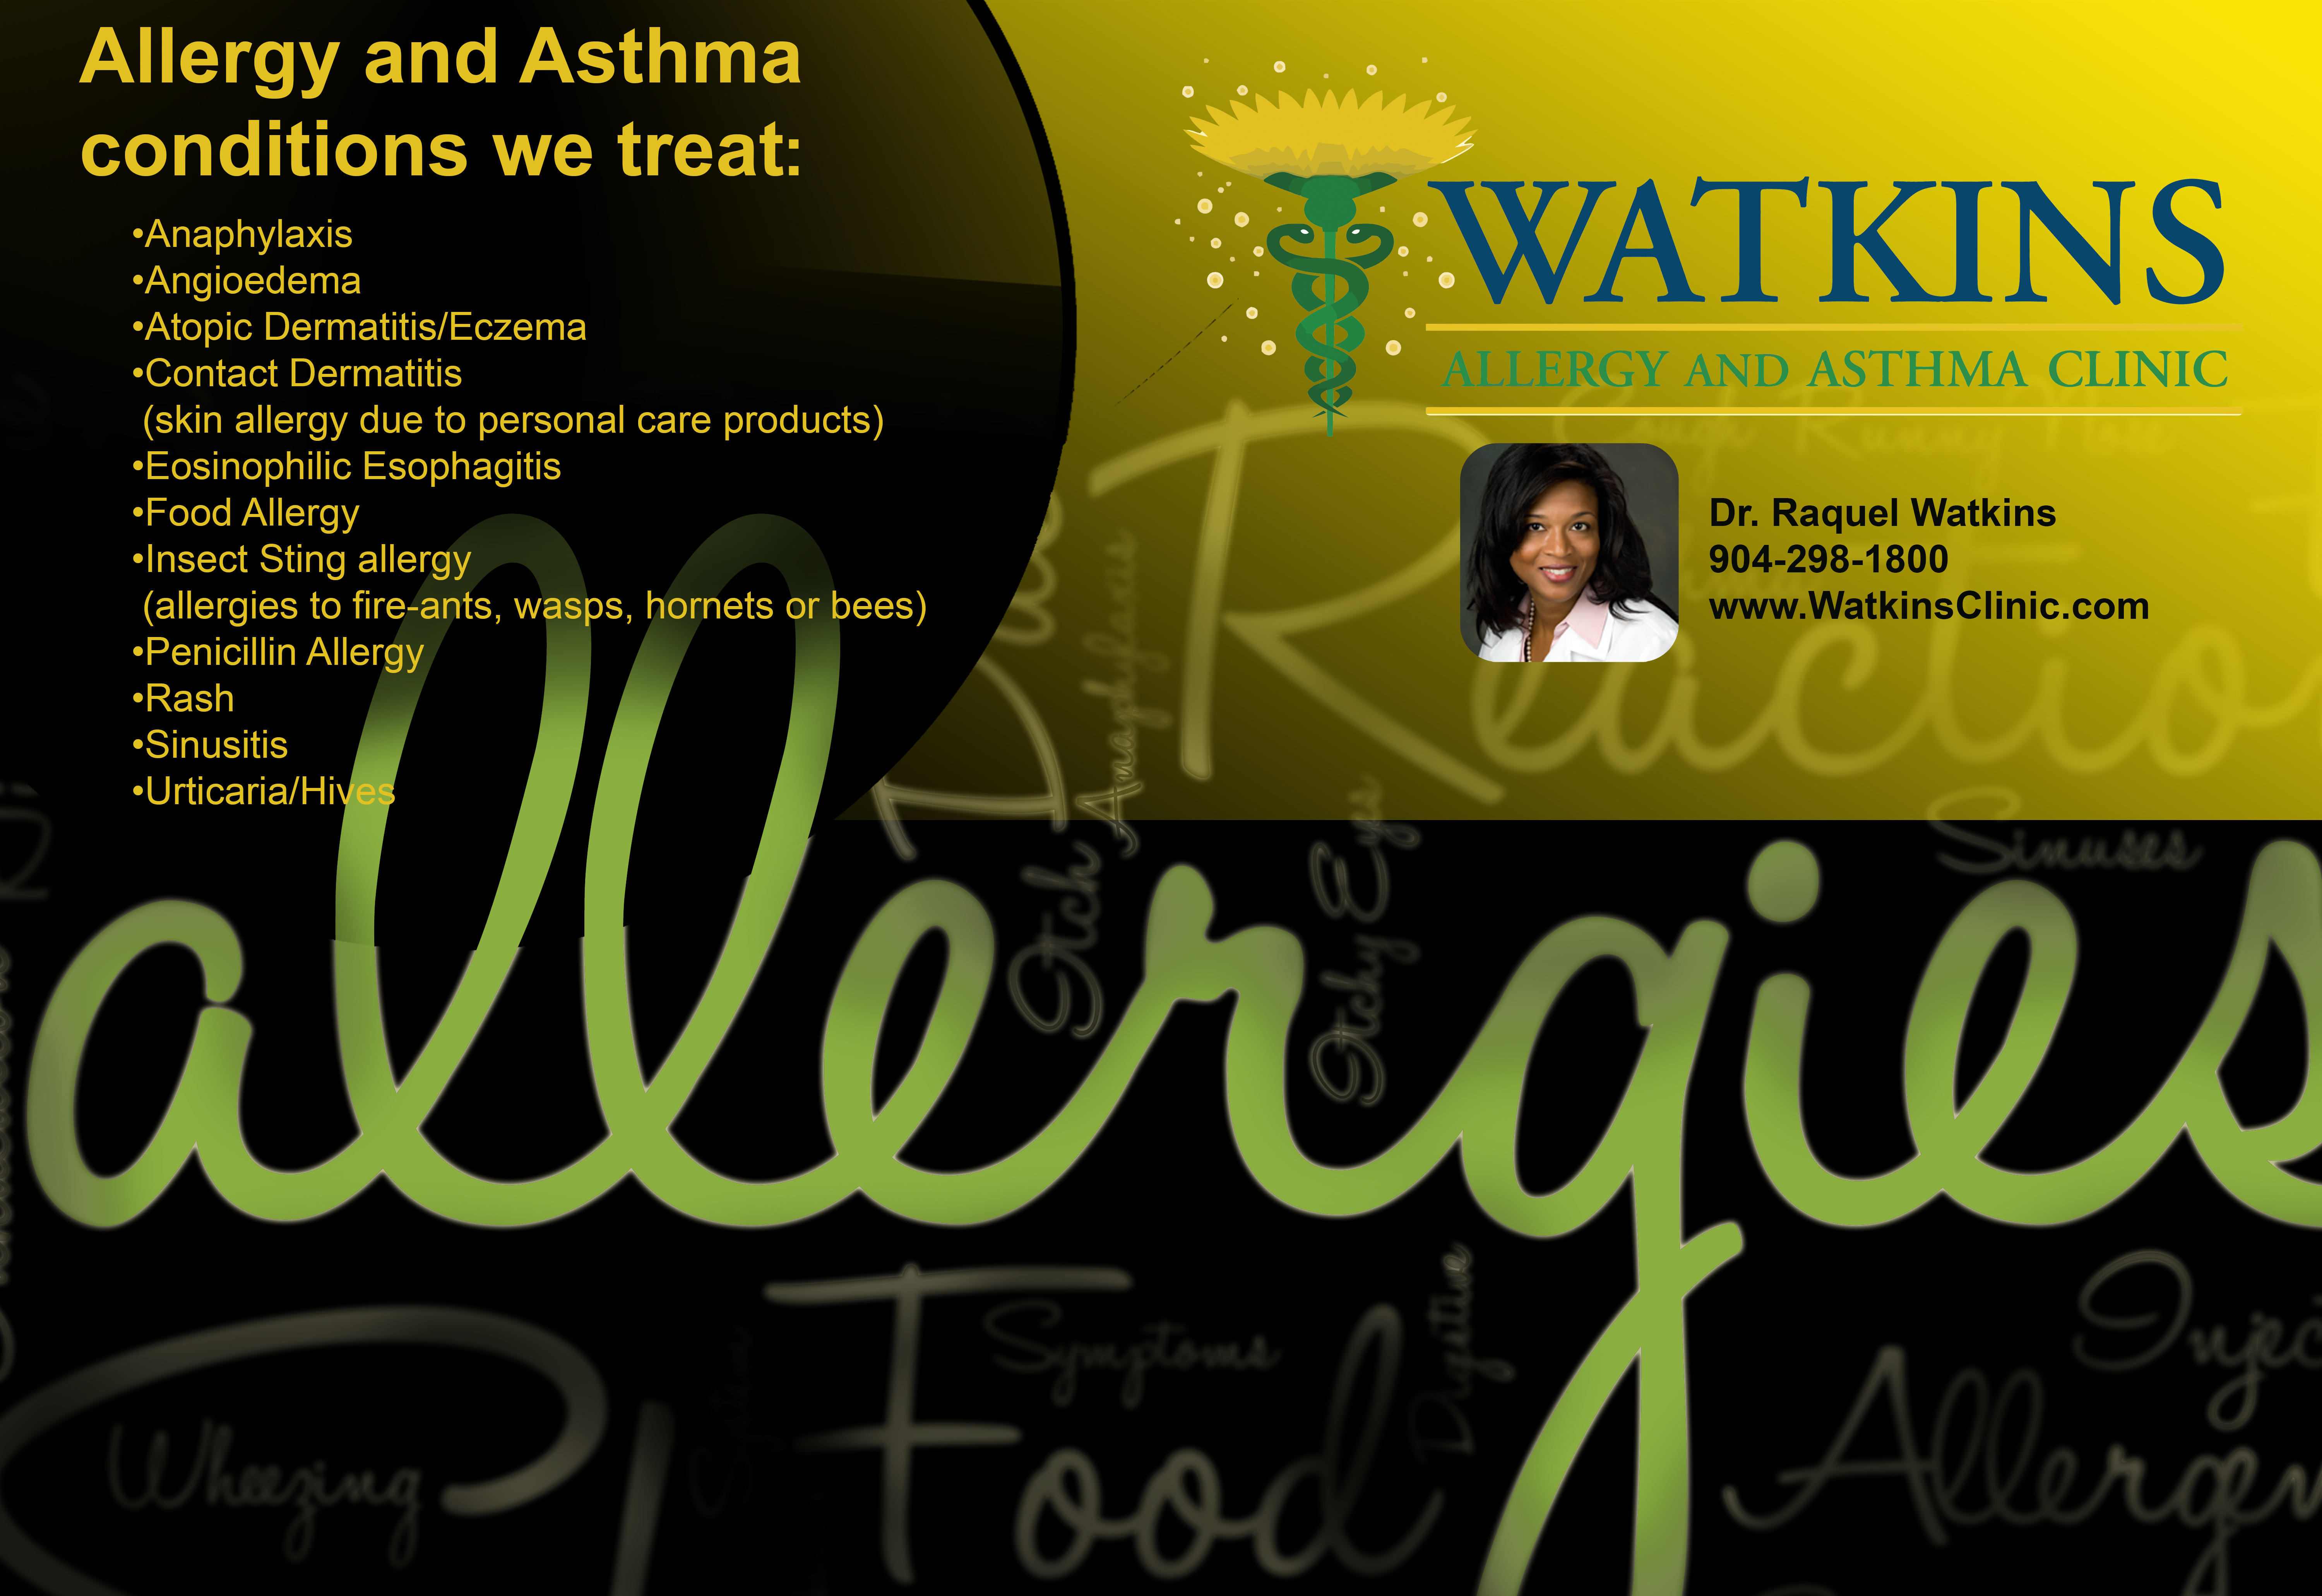 Watkins Allergy and Asthma Clinic Bartram Park Office image 3